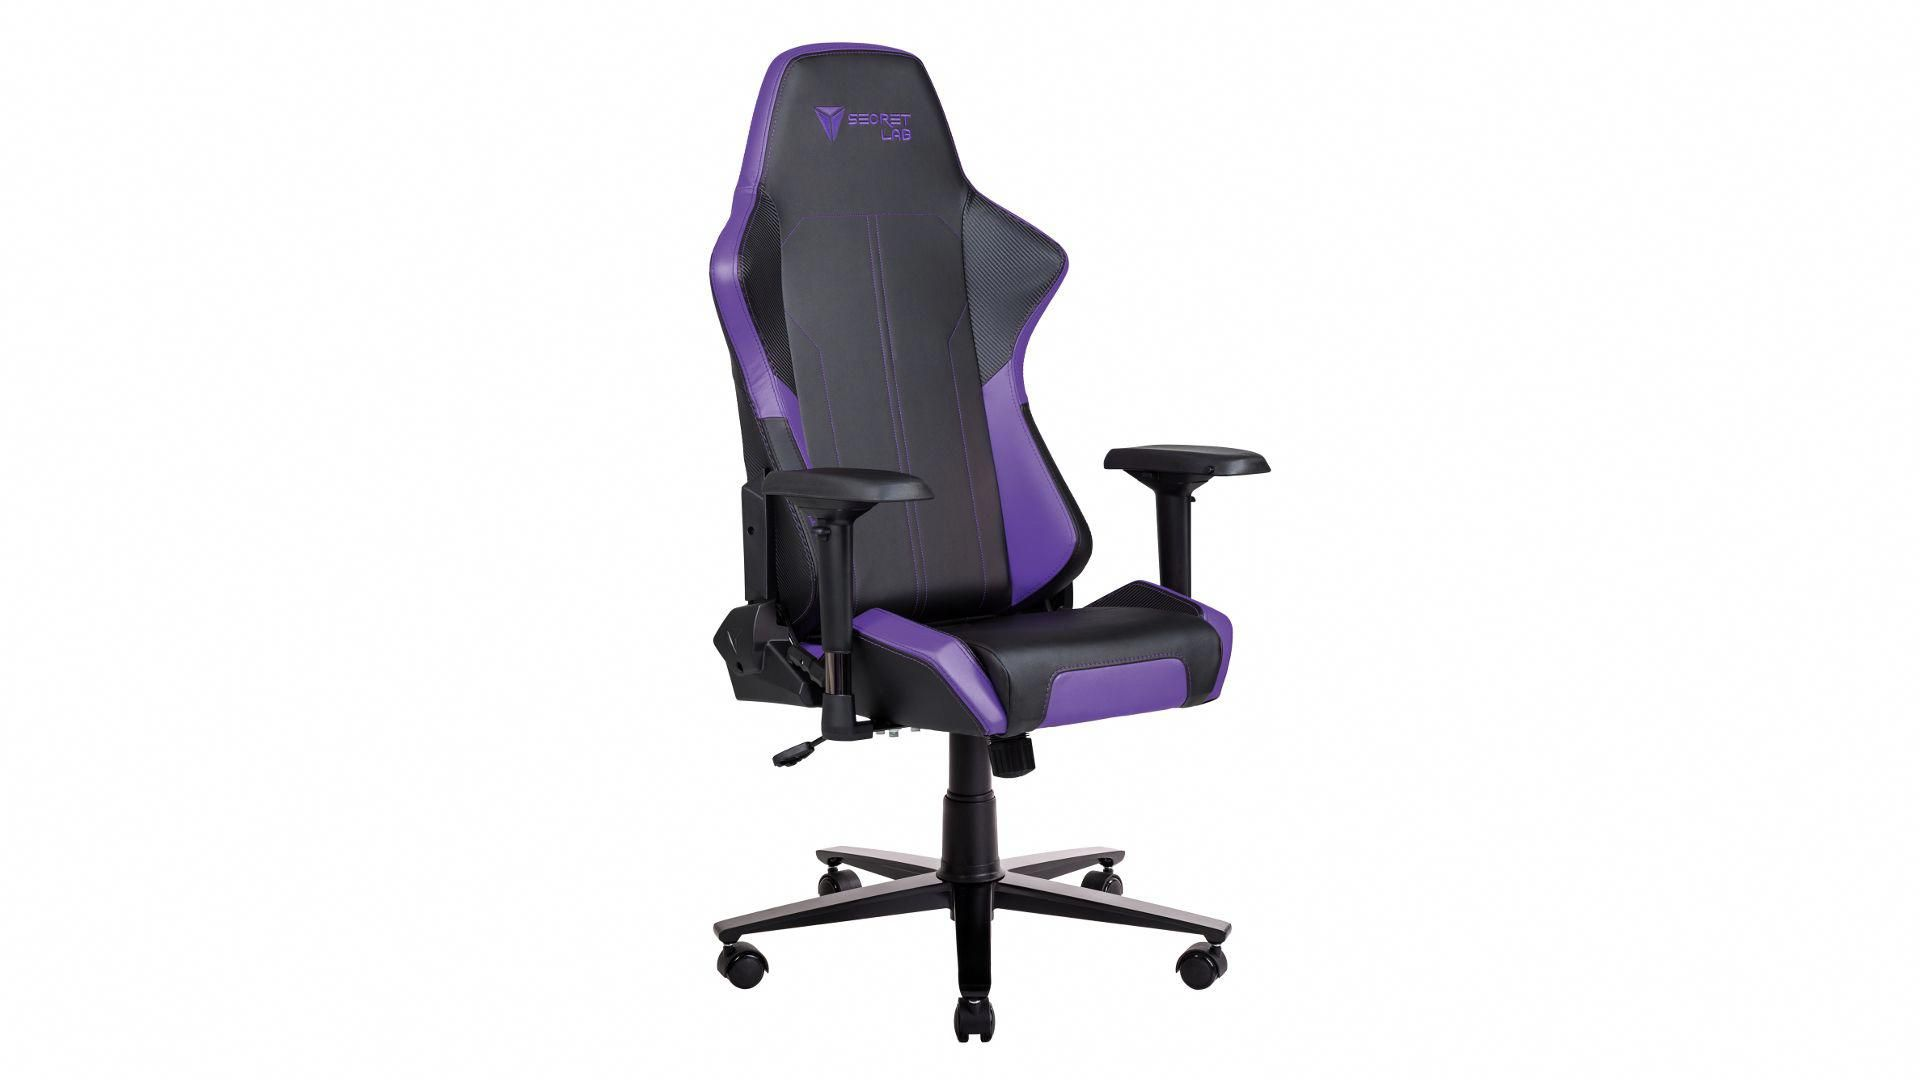 Remarkable Secretlabs Comfy New Gaming Chairs Aim To Be The Ultimate Pc Lamtechconsult Wood Chair Design Ideas Lamtechconsultcom